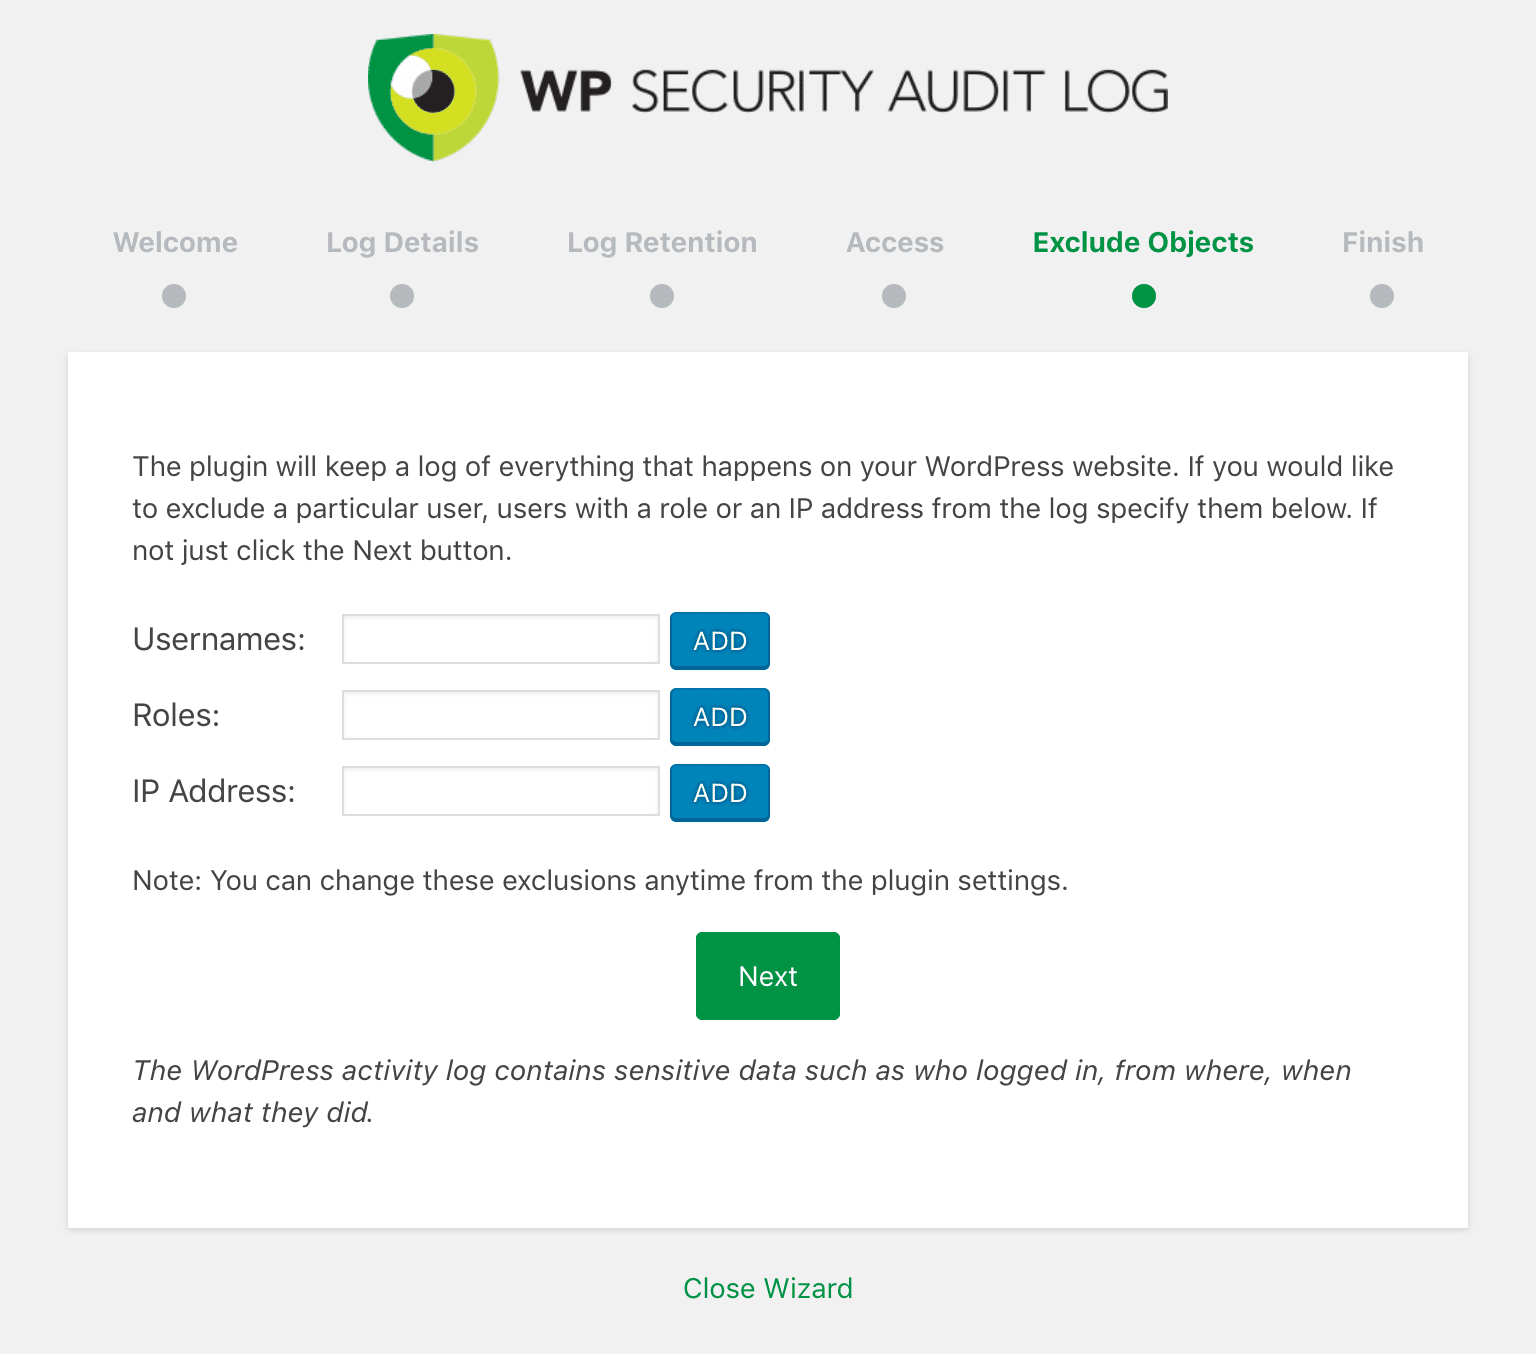 WP Security Audit Log excluir objetos